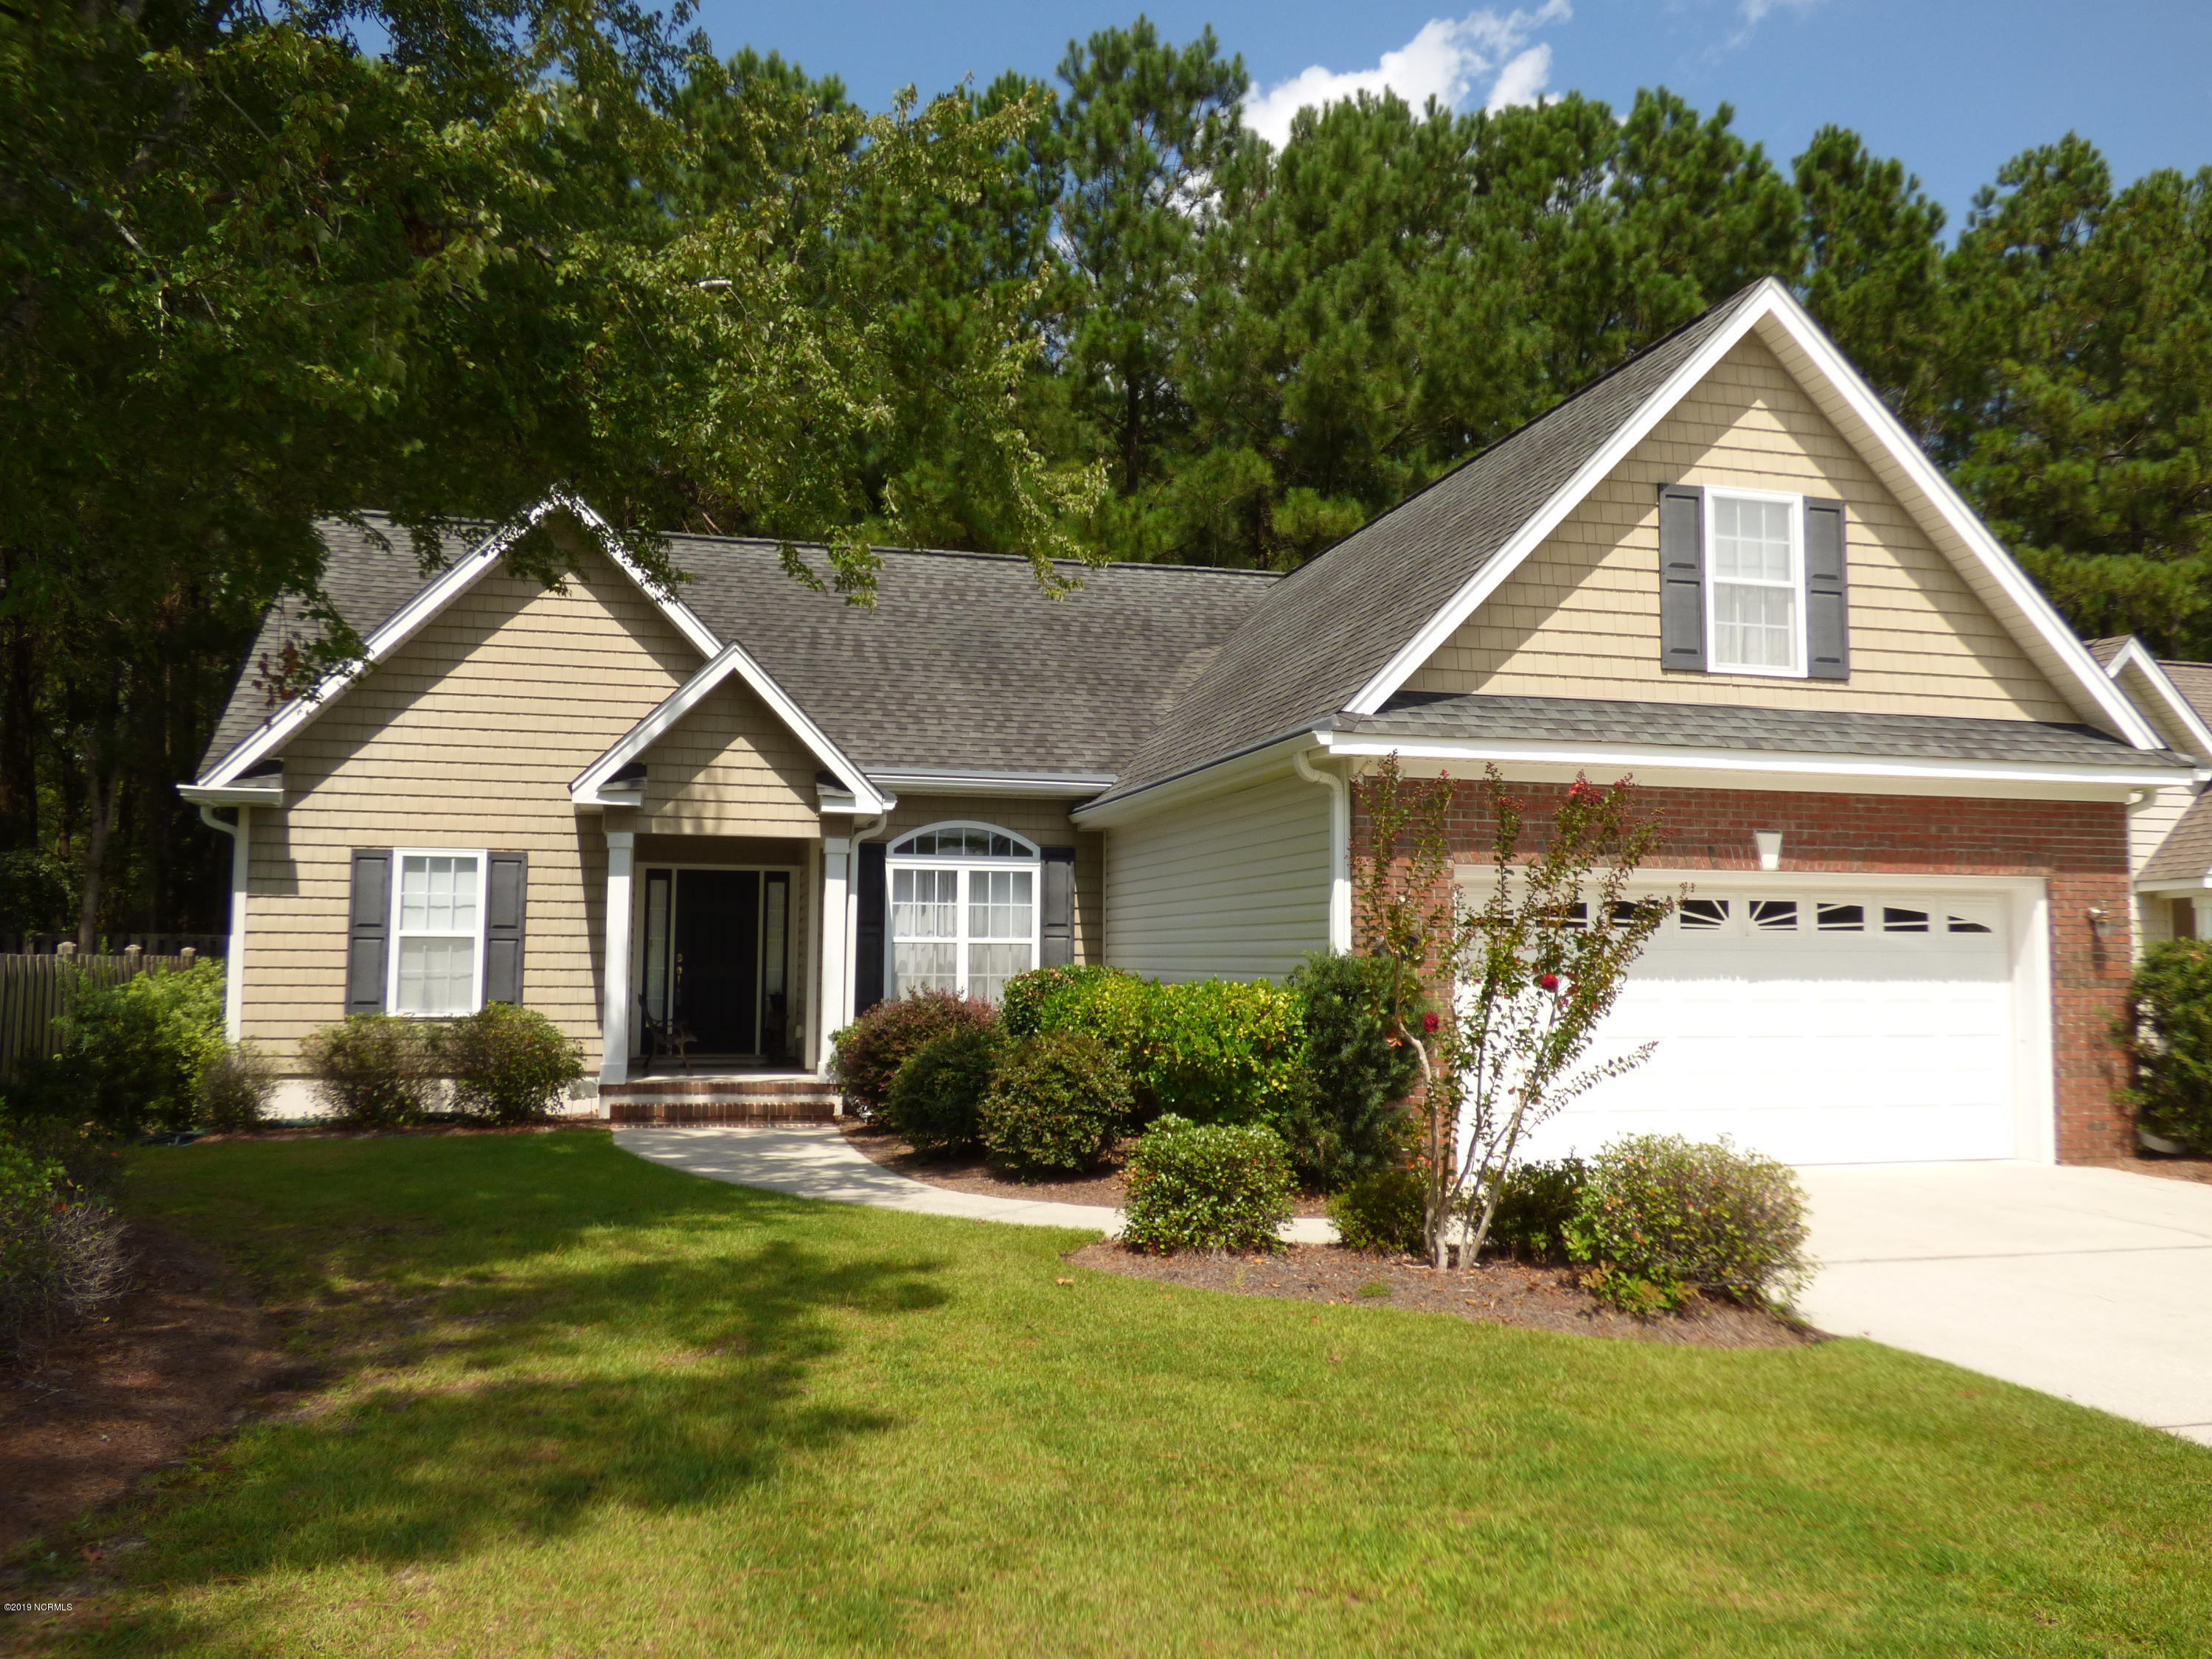 67 Cedar Tree Lane Calabash, NC 28467